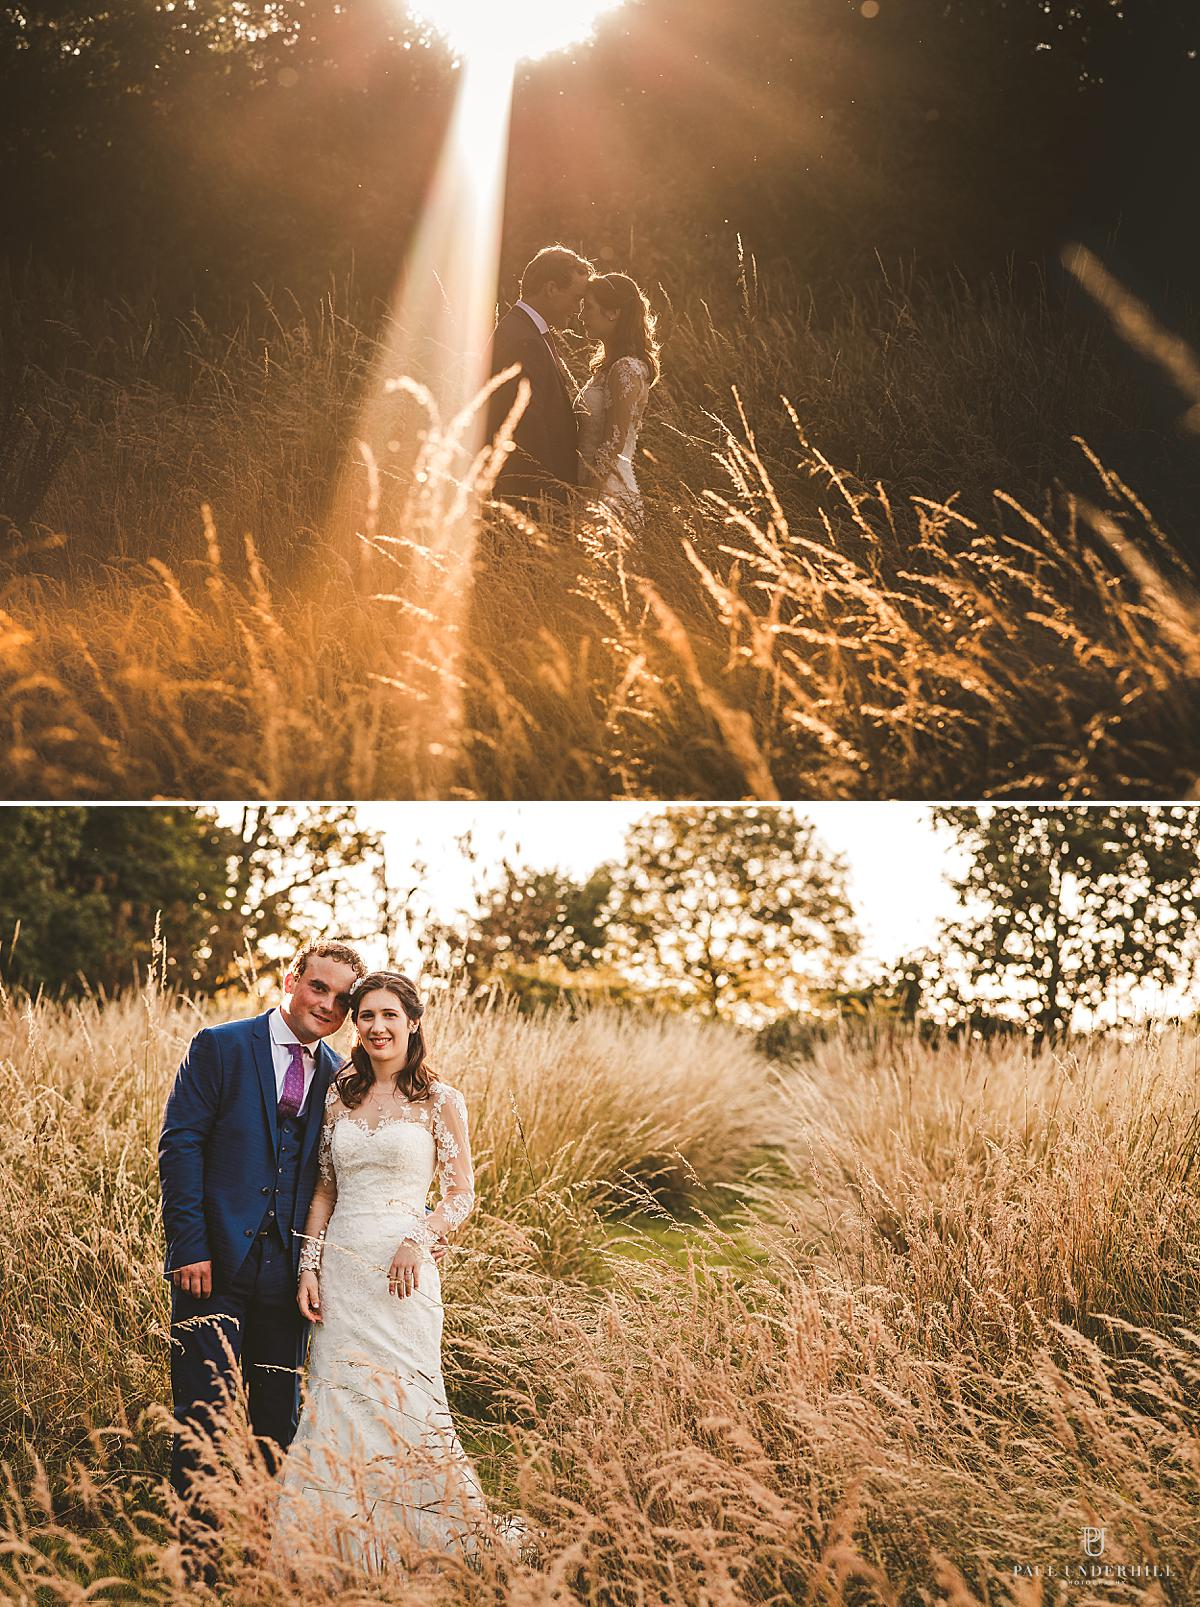 Creative bride groom-portraits Dorset photographer